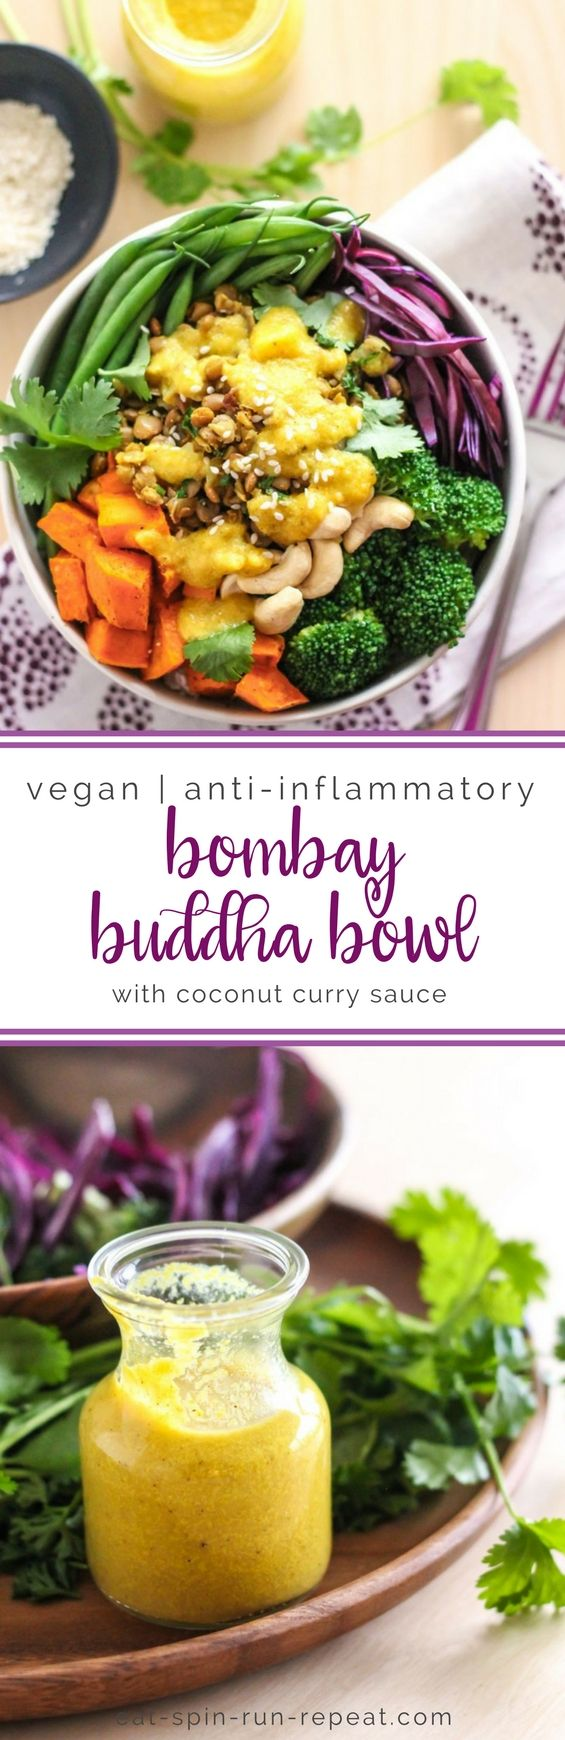 Anti-Inflammatory Bombay Buddha Bowl with 4-Ingredient Coconut Curry Sauce || Eat Spin Run Repeat